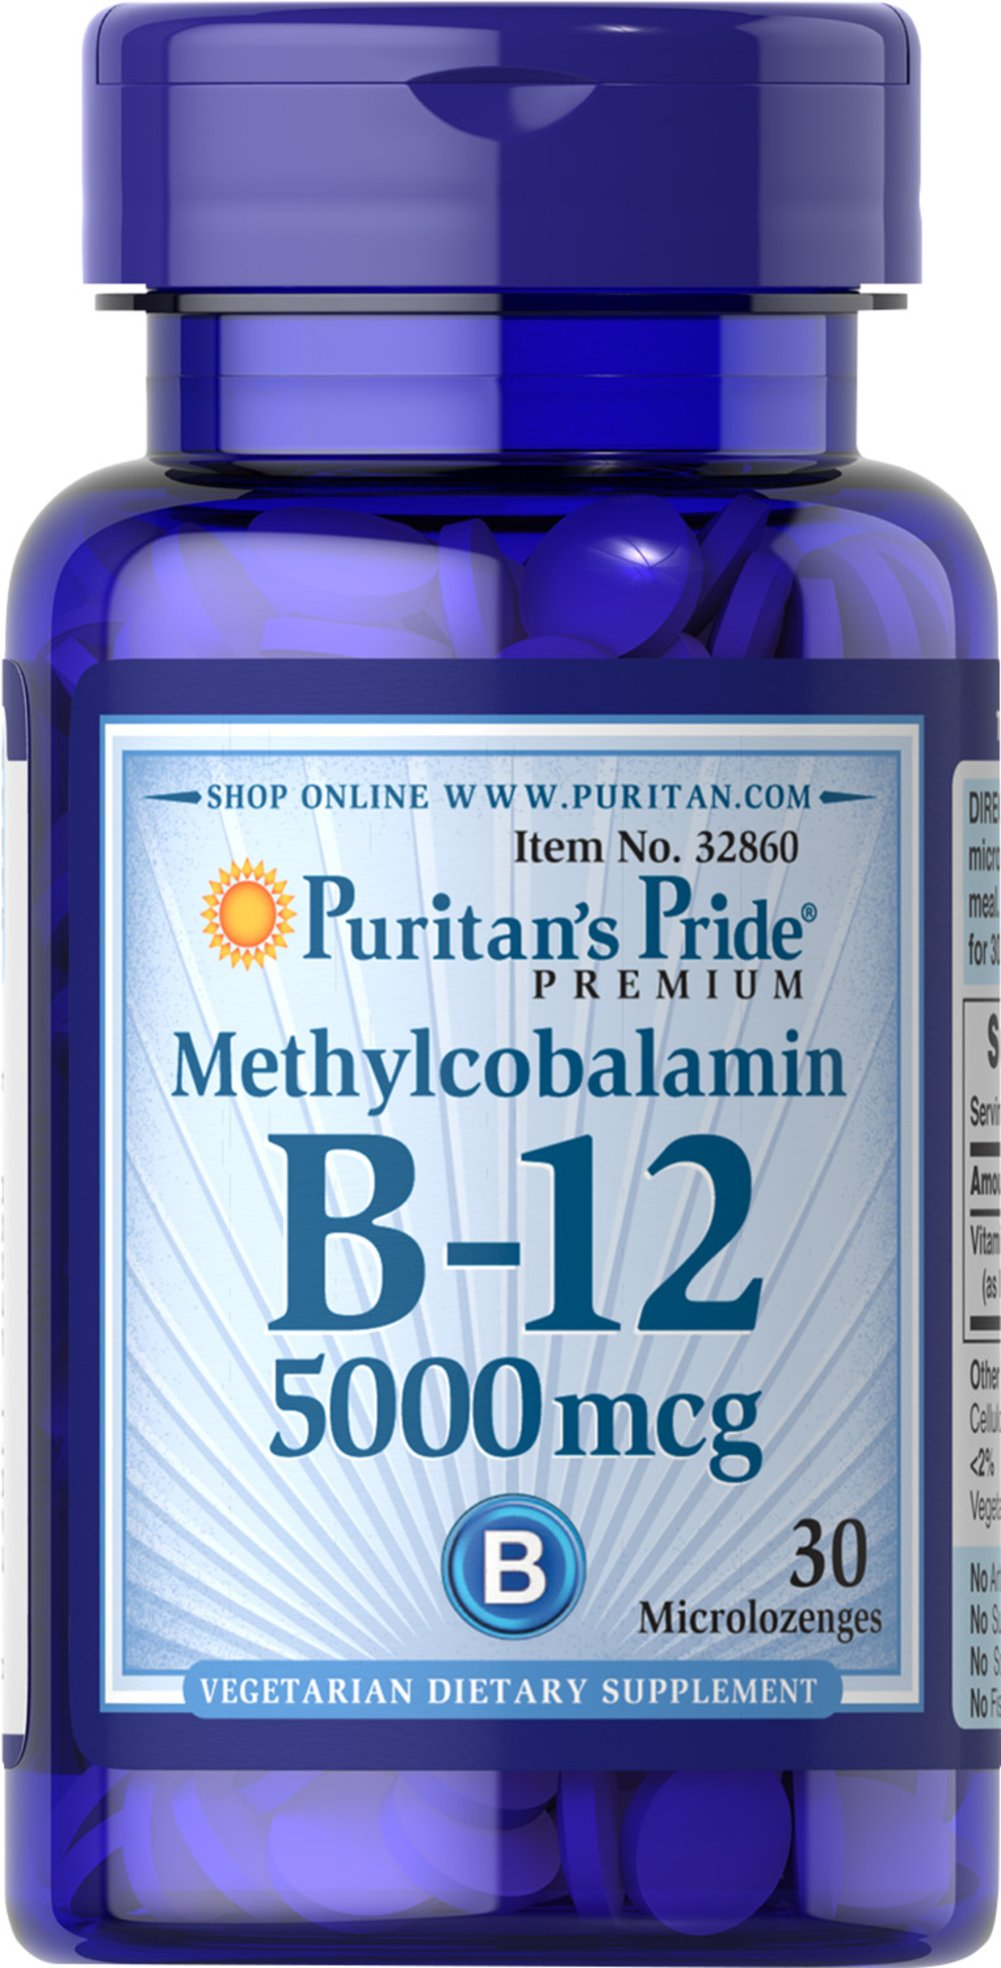 Methylcobalamin Vitamin B-12 5000 mcg Thumbnail Alternate Bottle View